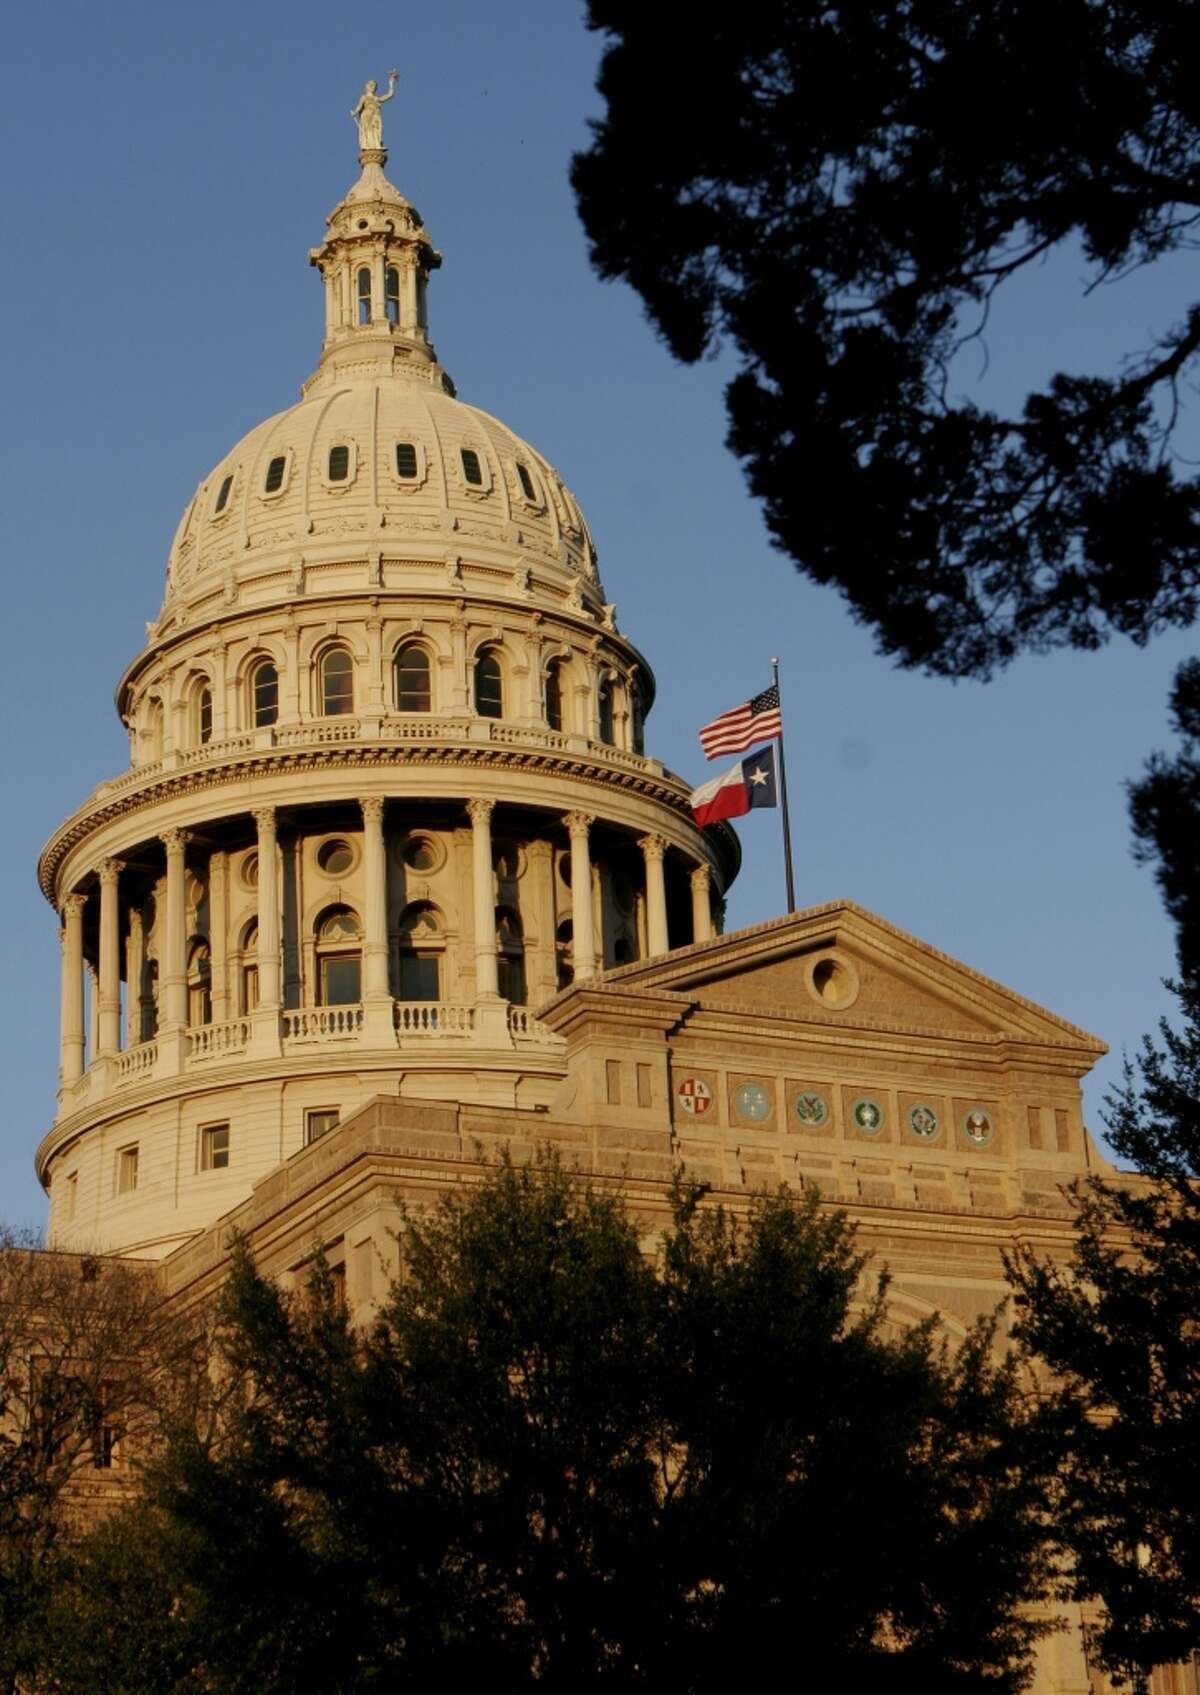 The Texas Tribune has released new data showing how much Texas politicians and their support groups have raised. Click through to see the top campaign war chests in the state.